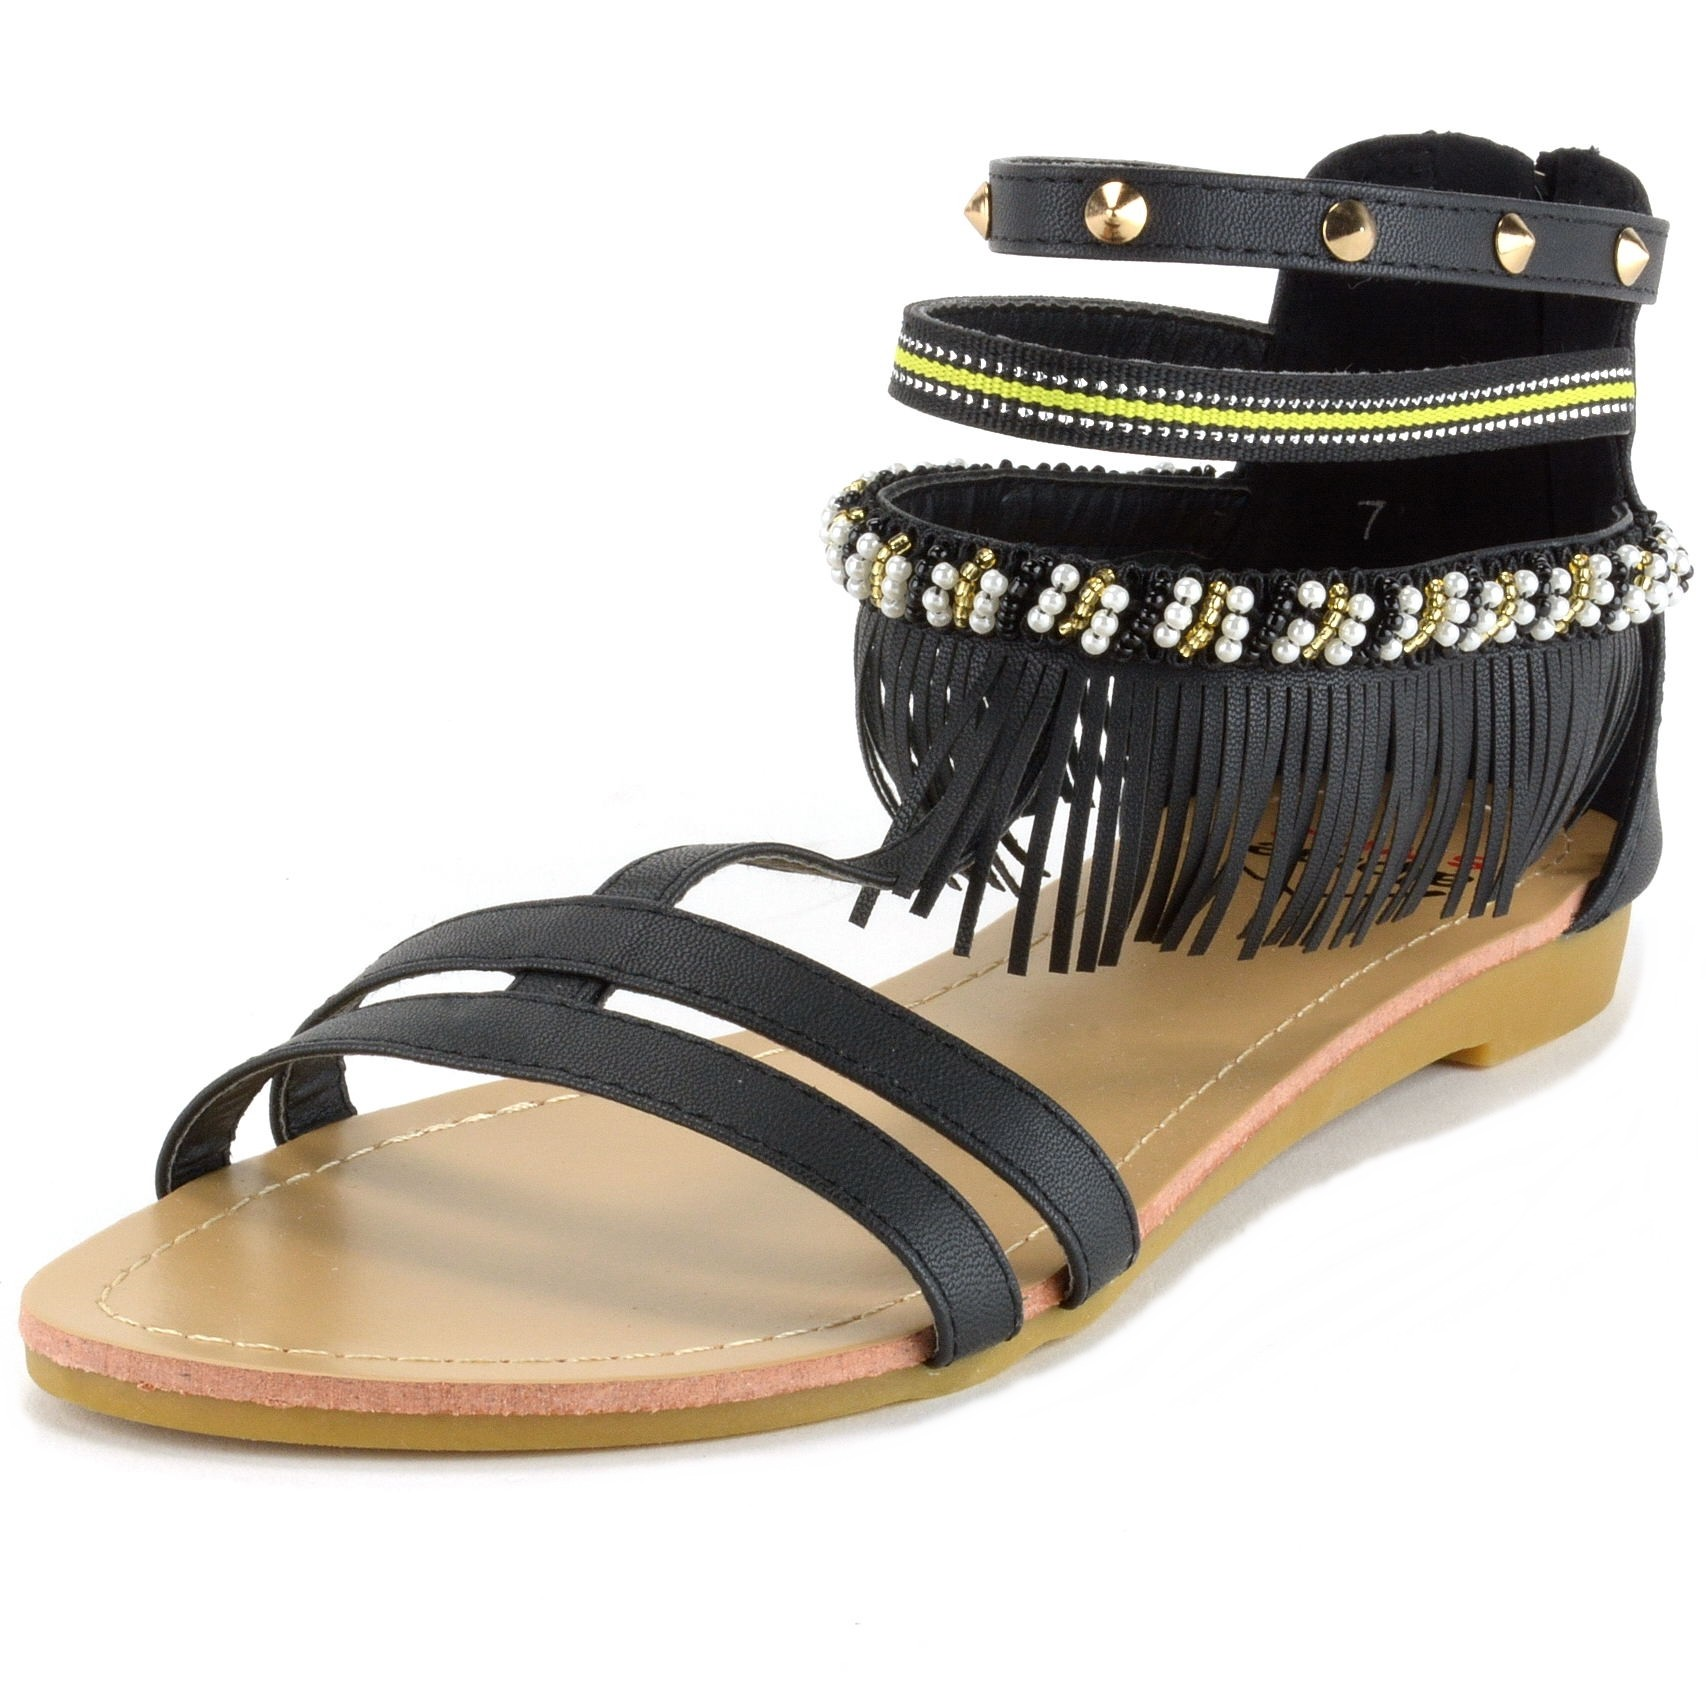 6b2b2fe2dac5 Alpine Swiss Womens Fringe Sandals Beaded   Studded Strappy ...